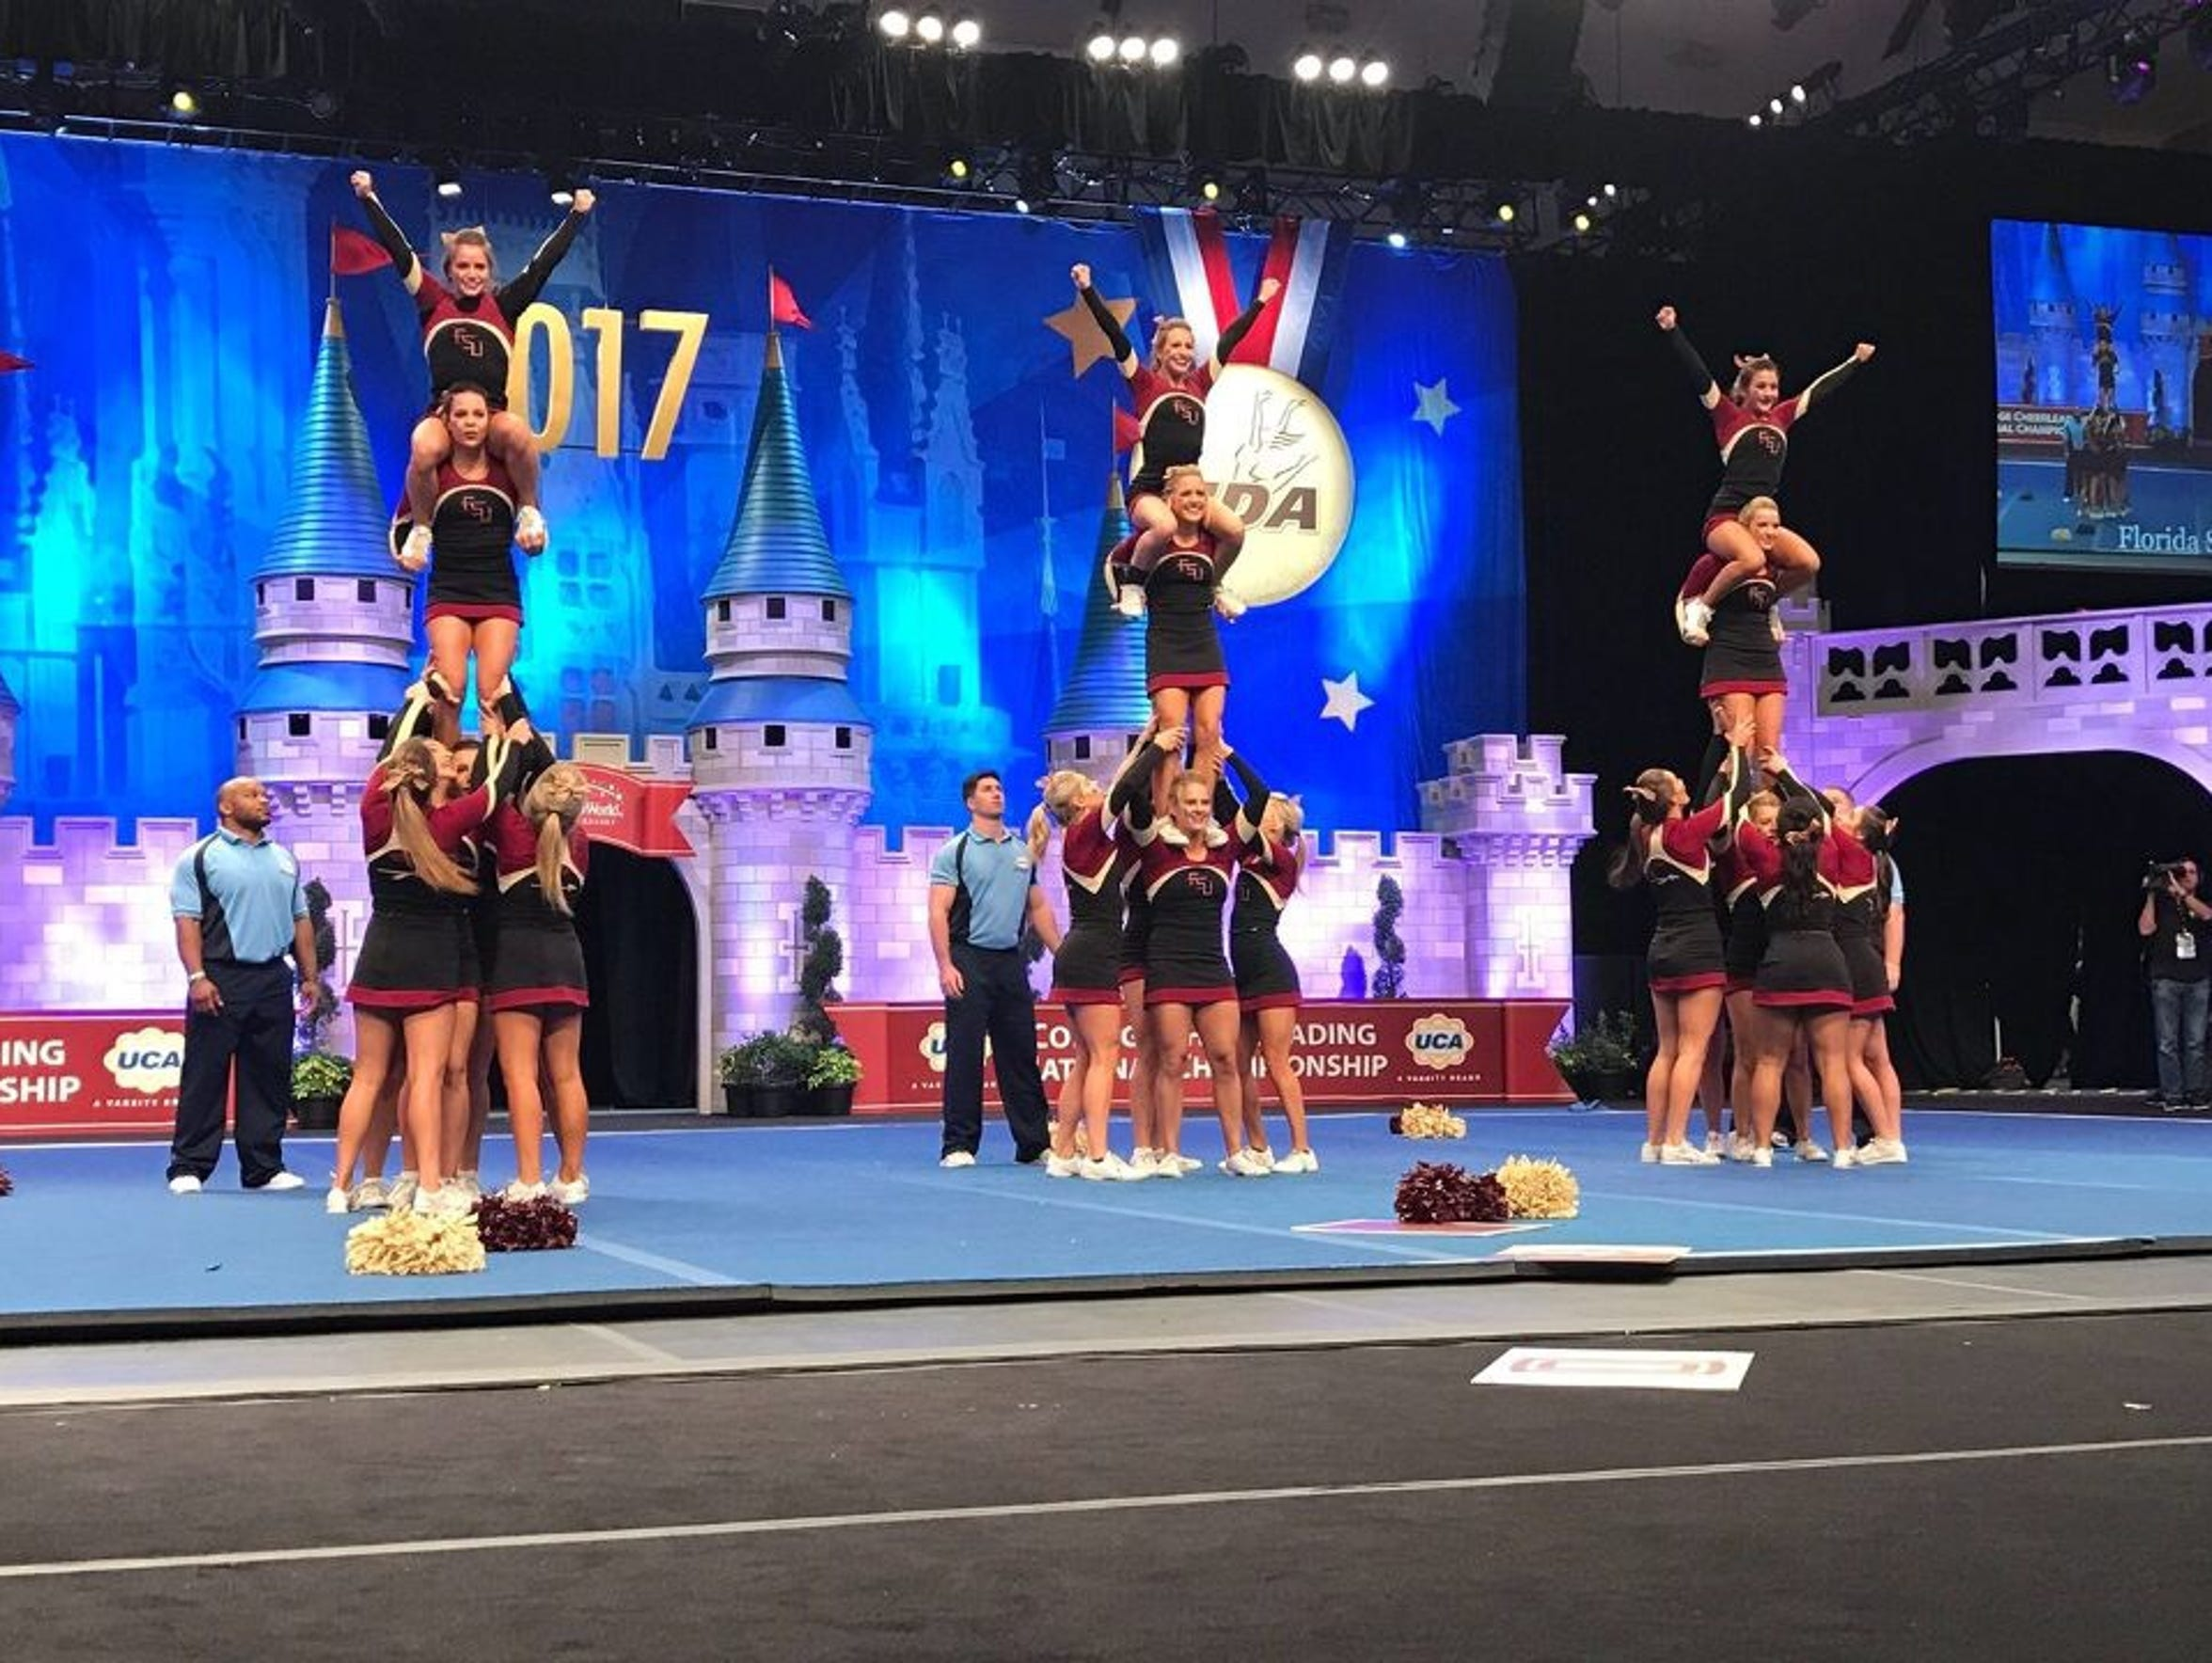 The All-Girl Cheerleading squad placed 12th at the